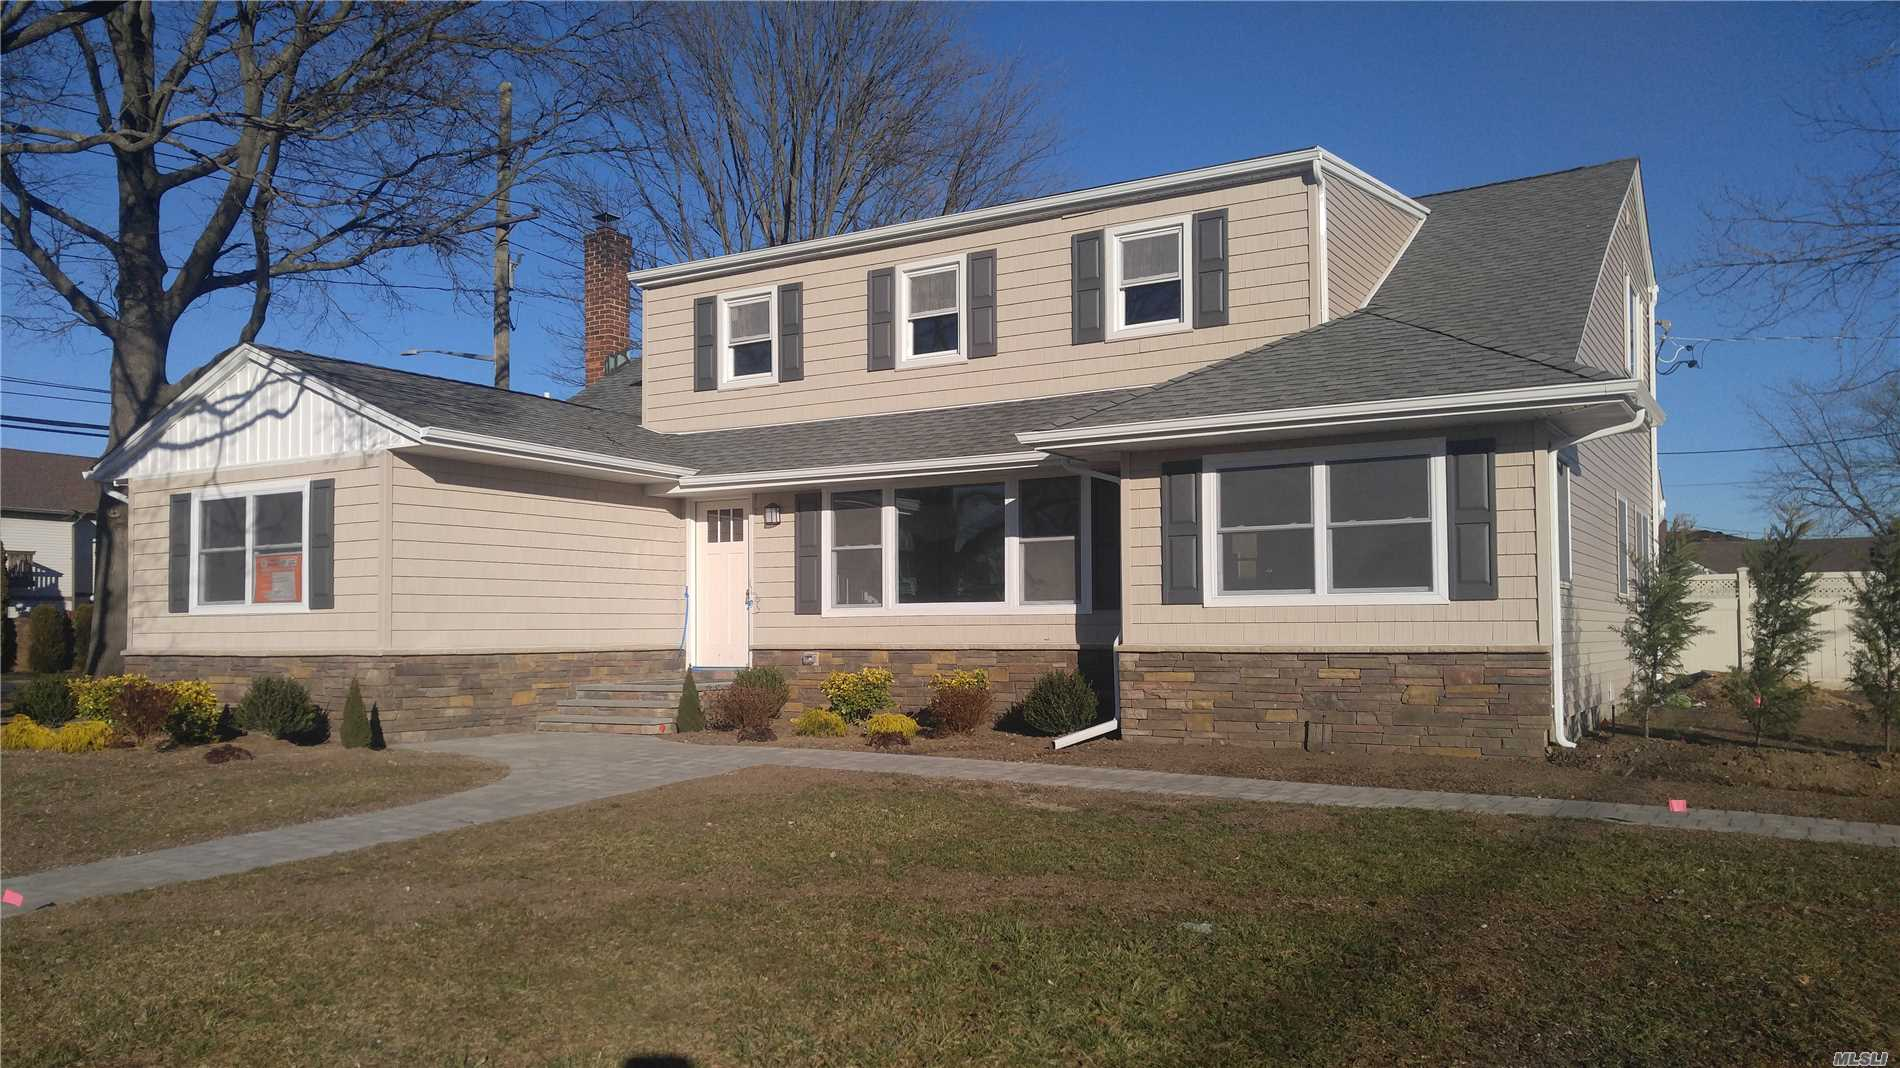 Photo of home for sale at 1201 Wisteria Rd, Wantagh NY